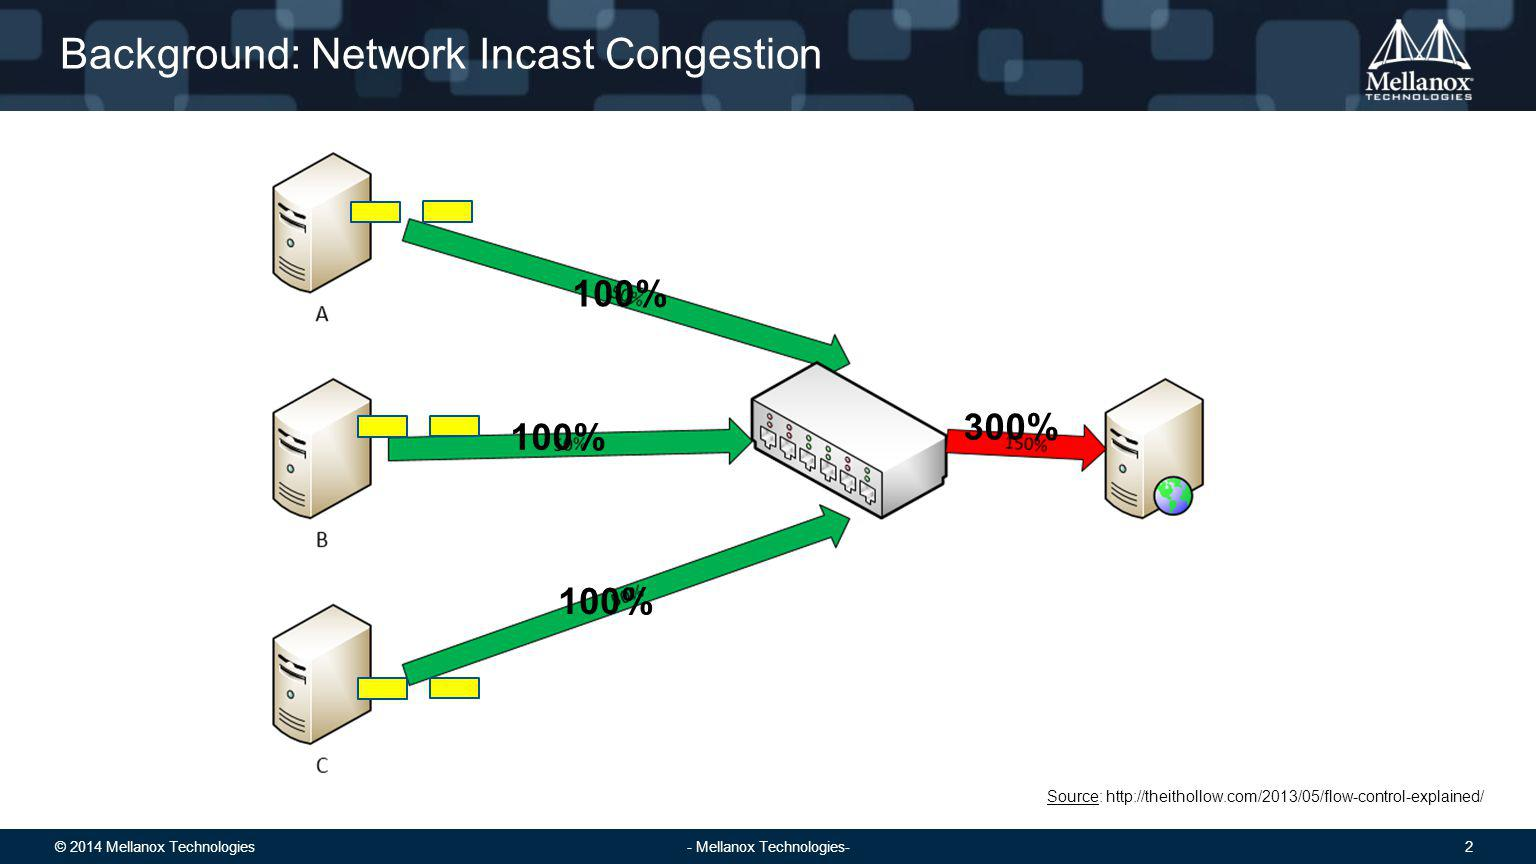 © 2014 Mellanox Technologies 3 - Mellanox Technologies- Background: Pause Frame Flow Control Source: http://theithollow.com/2013/05/flow-control-explained/ Buffer